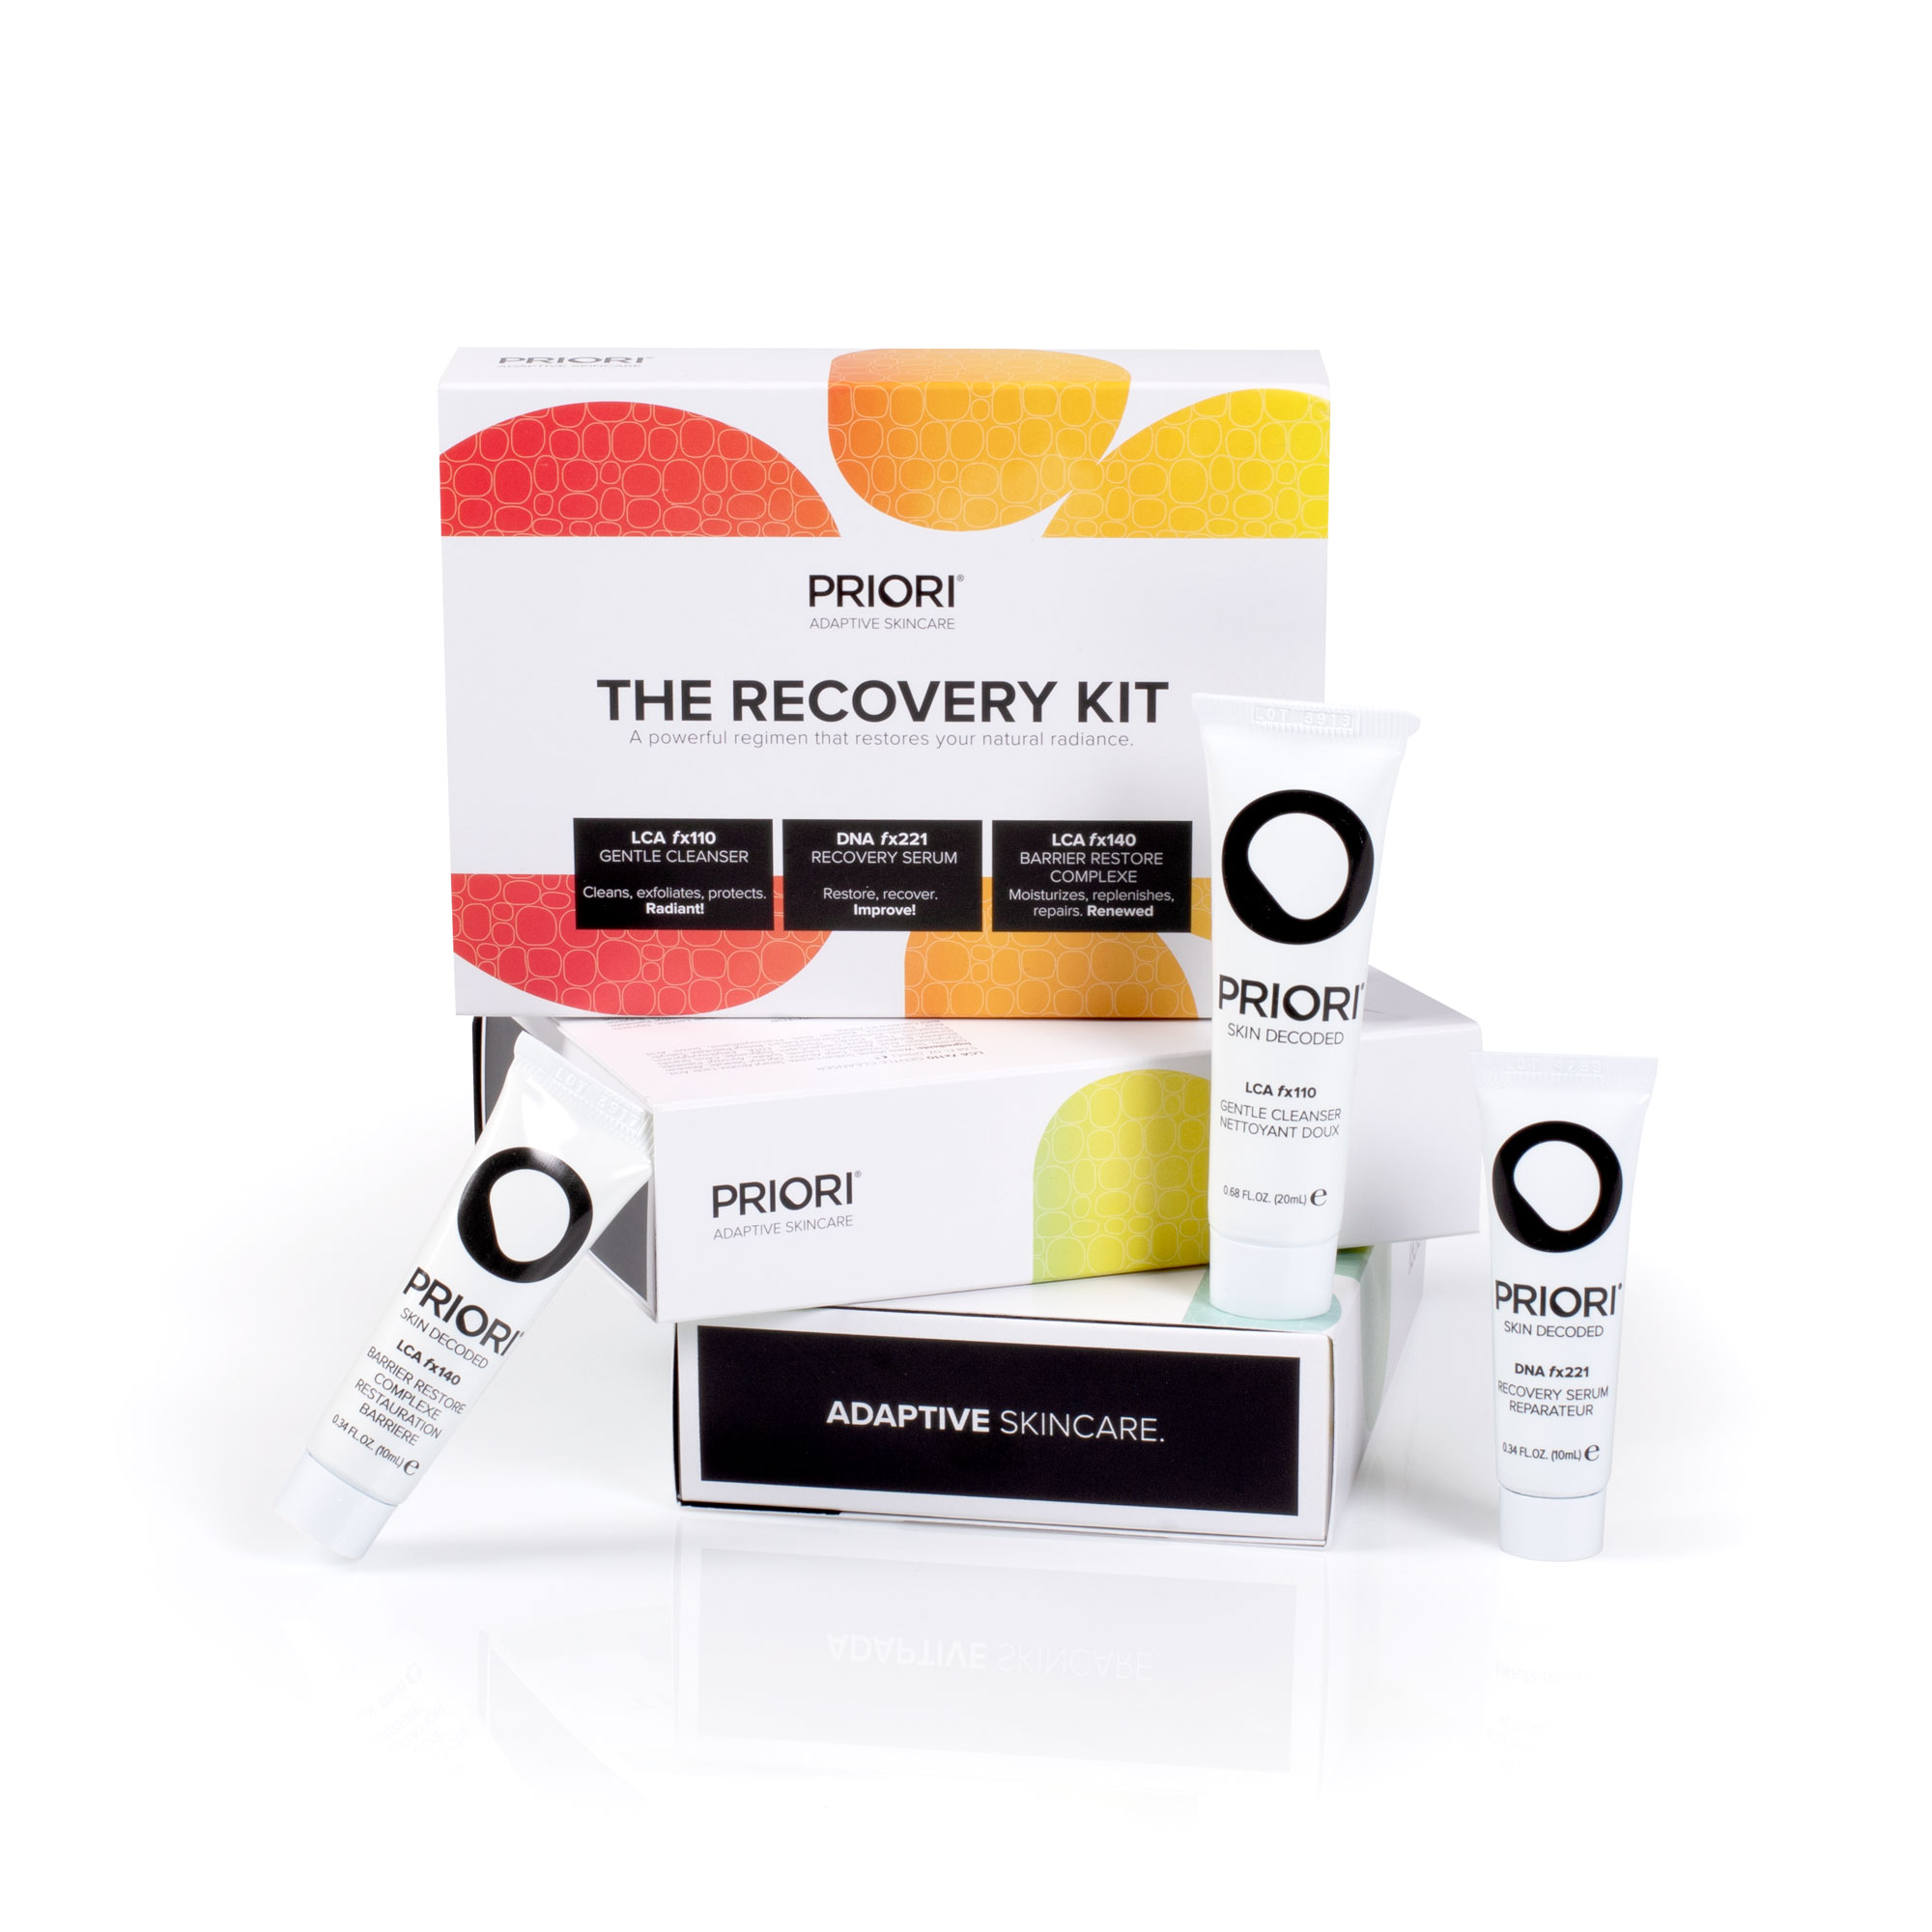 Priori_New_Product_Photos_Recovery_Kit_Editorial